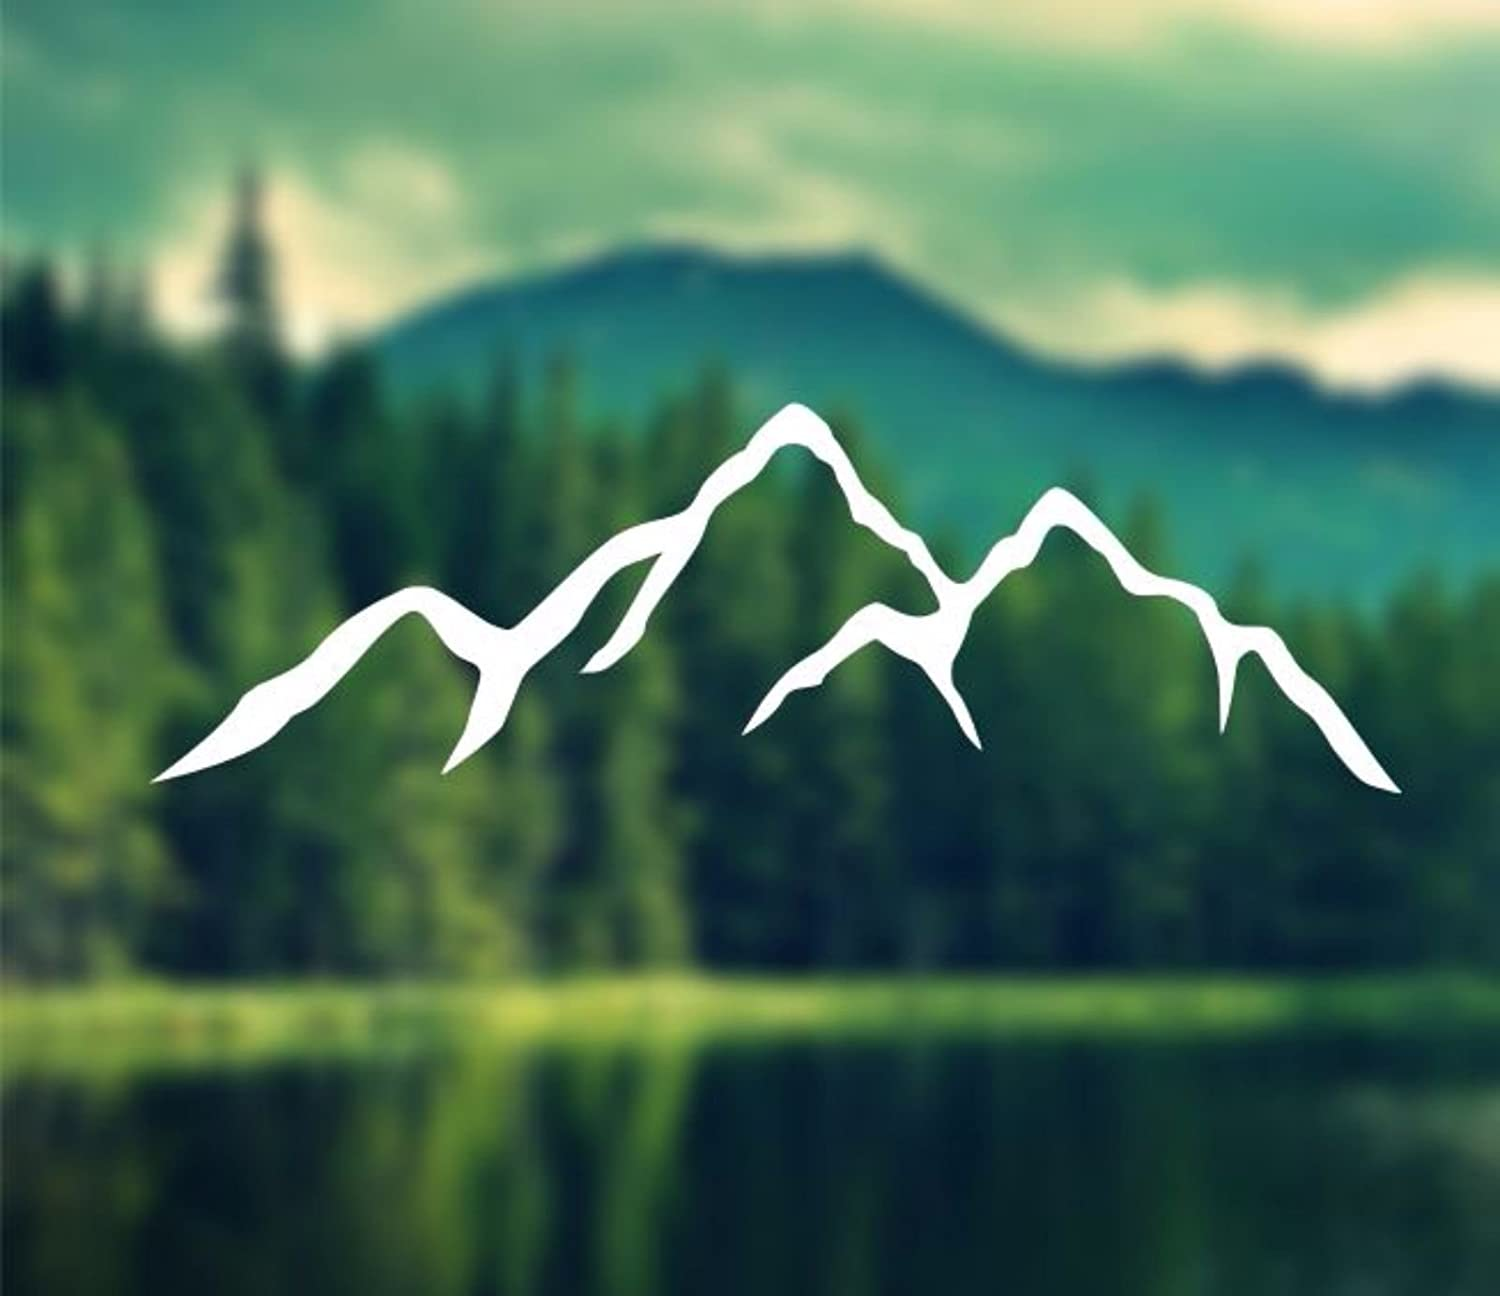 Decal Mountains Silhouette Car Decal Laptop Decal Macbook Decal Ipad Decal 2 x 6 White